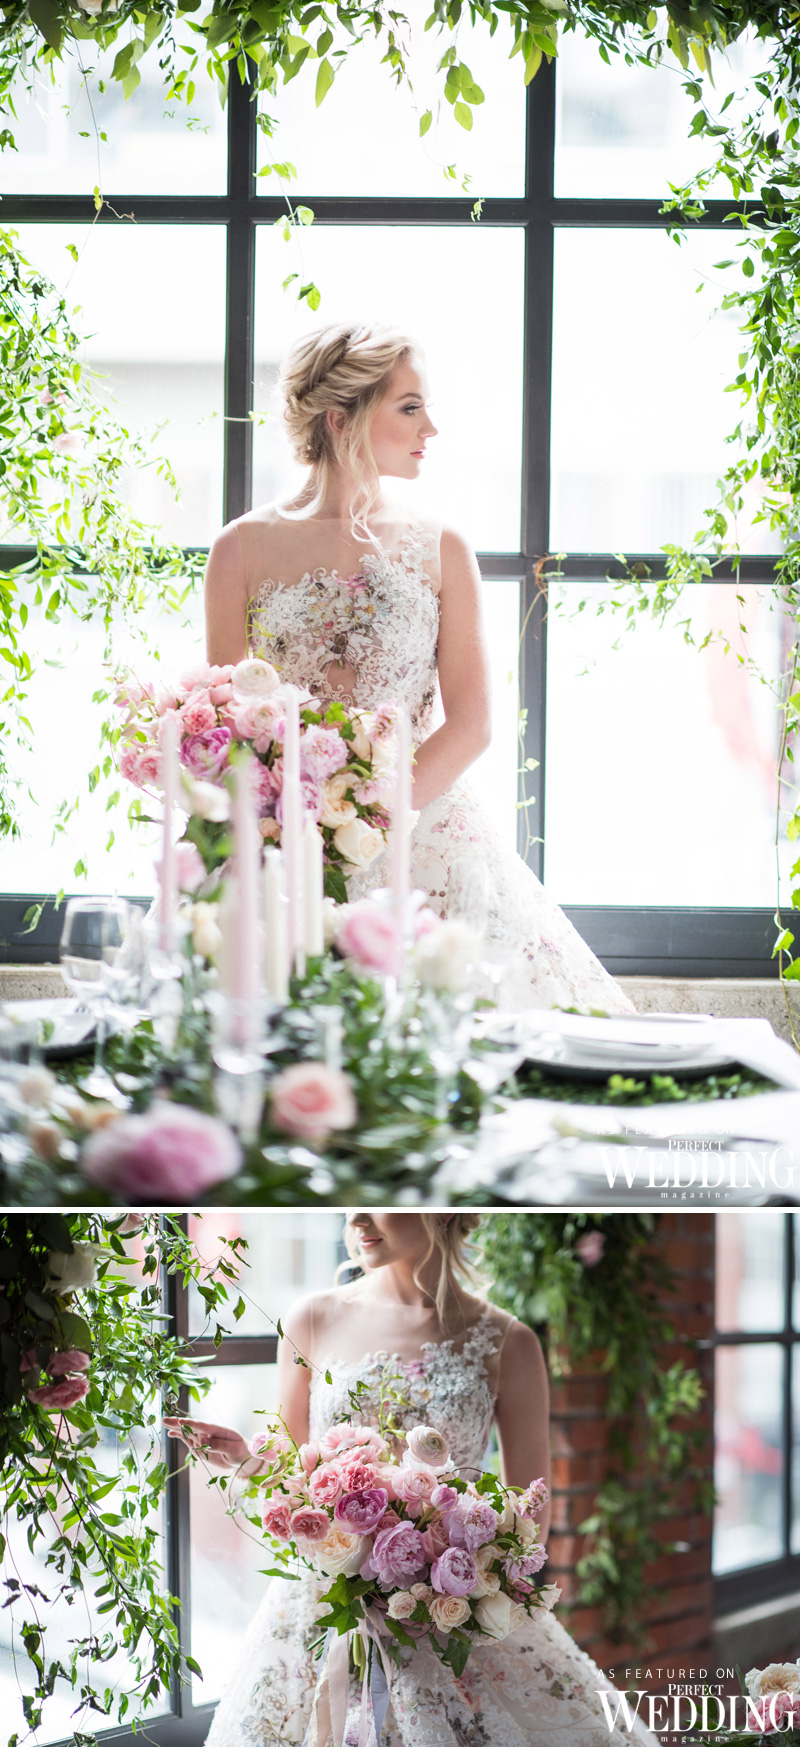 Vancouver Wedding Vendors, Perfect Wedding Magazine, Wedding Decor Ideas, Garden Wedding, Perfect Wedding Magazine, Ines Di santo, Wedding Cakes, Perfect Wedding Blog, Wedding Blog, Wedding Magazine